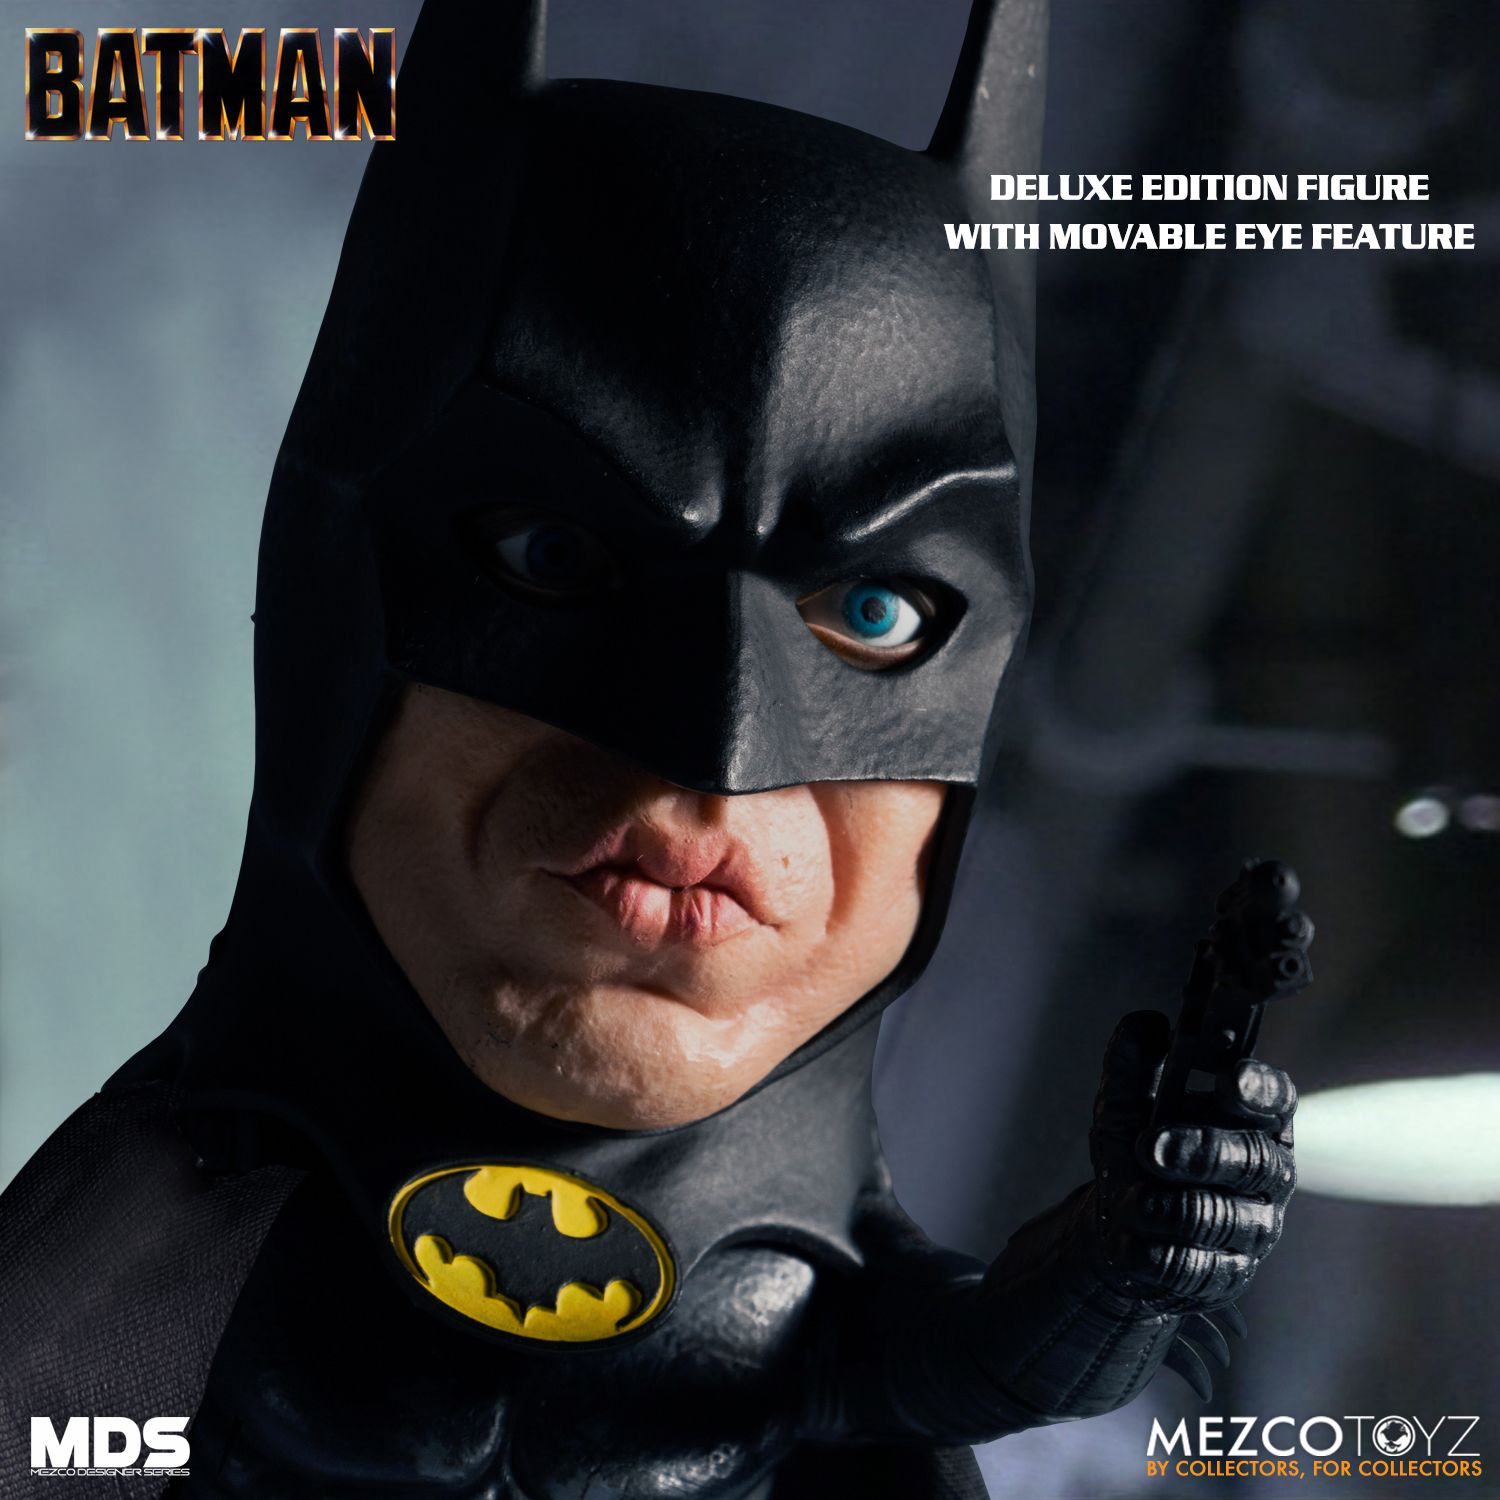 BATMAN '89 Deluxe Action Figure Coming from Mezco Toyz_10